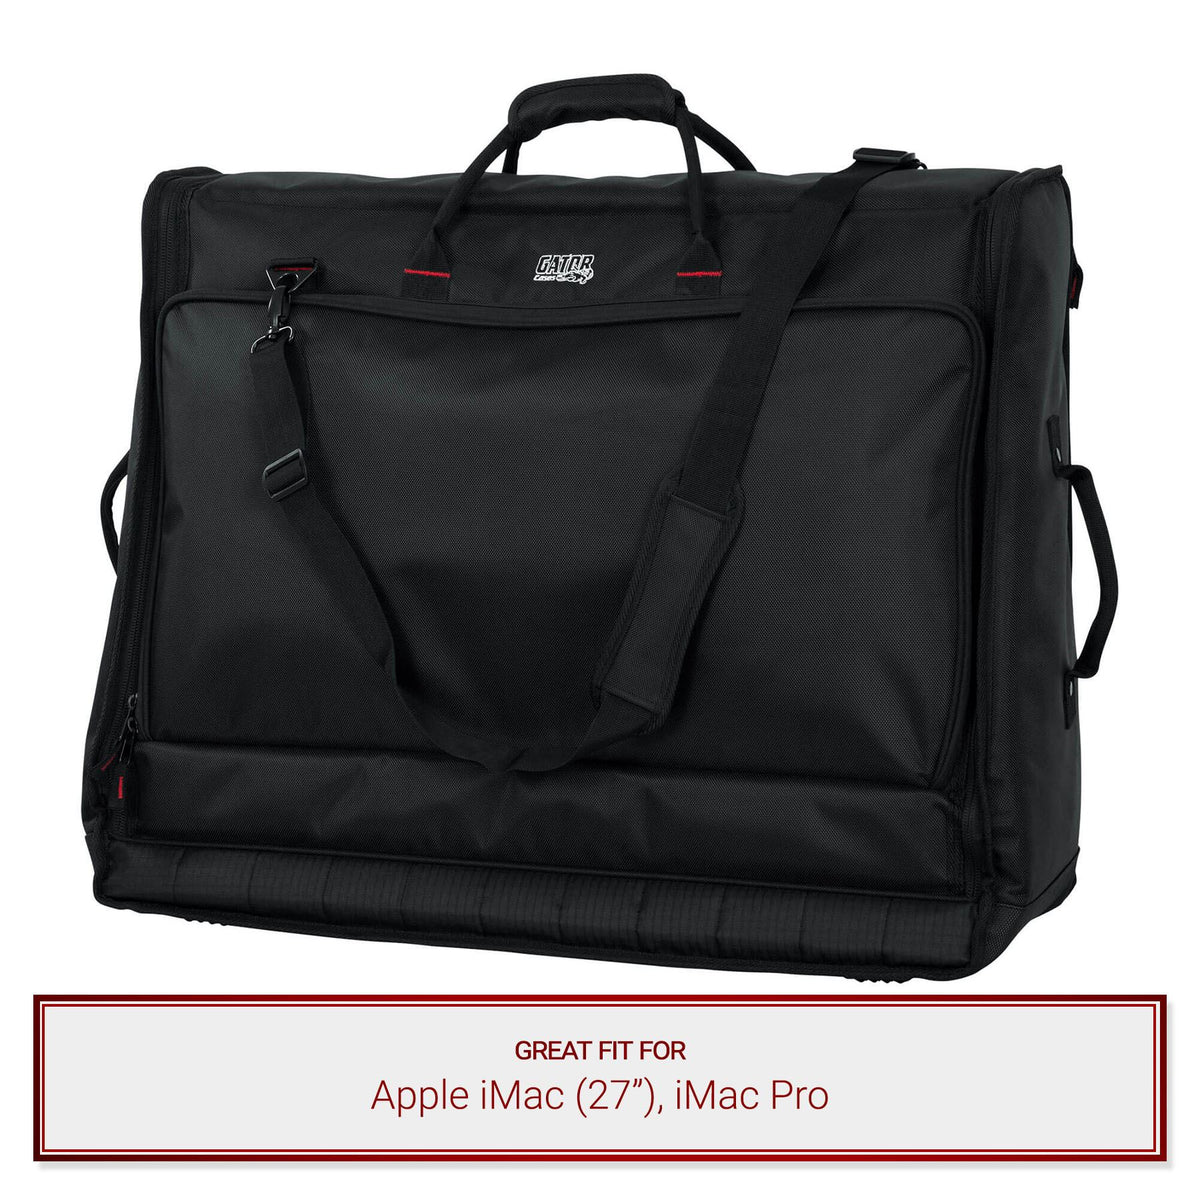 "Gator Cases Mixer Bag for Apple iMac (27""), iMac Pro Mixers"